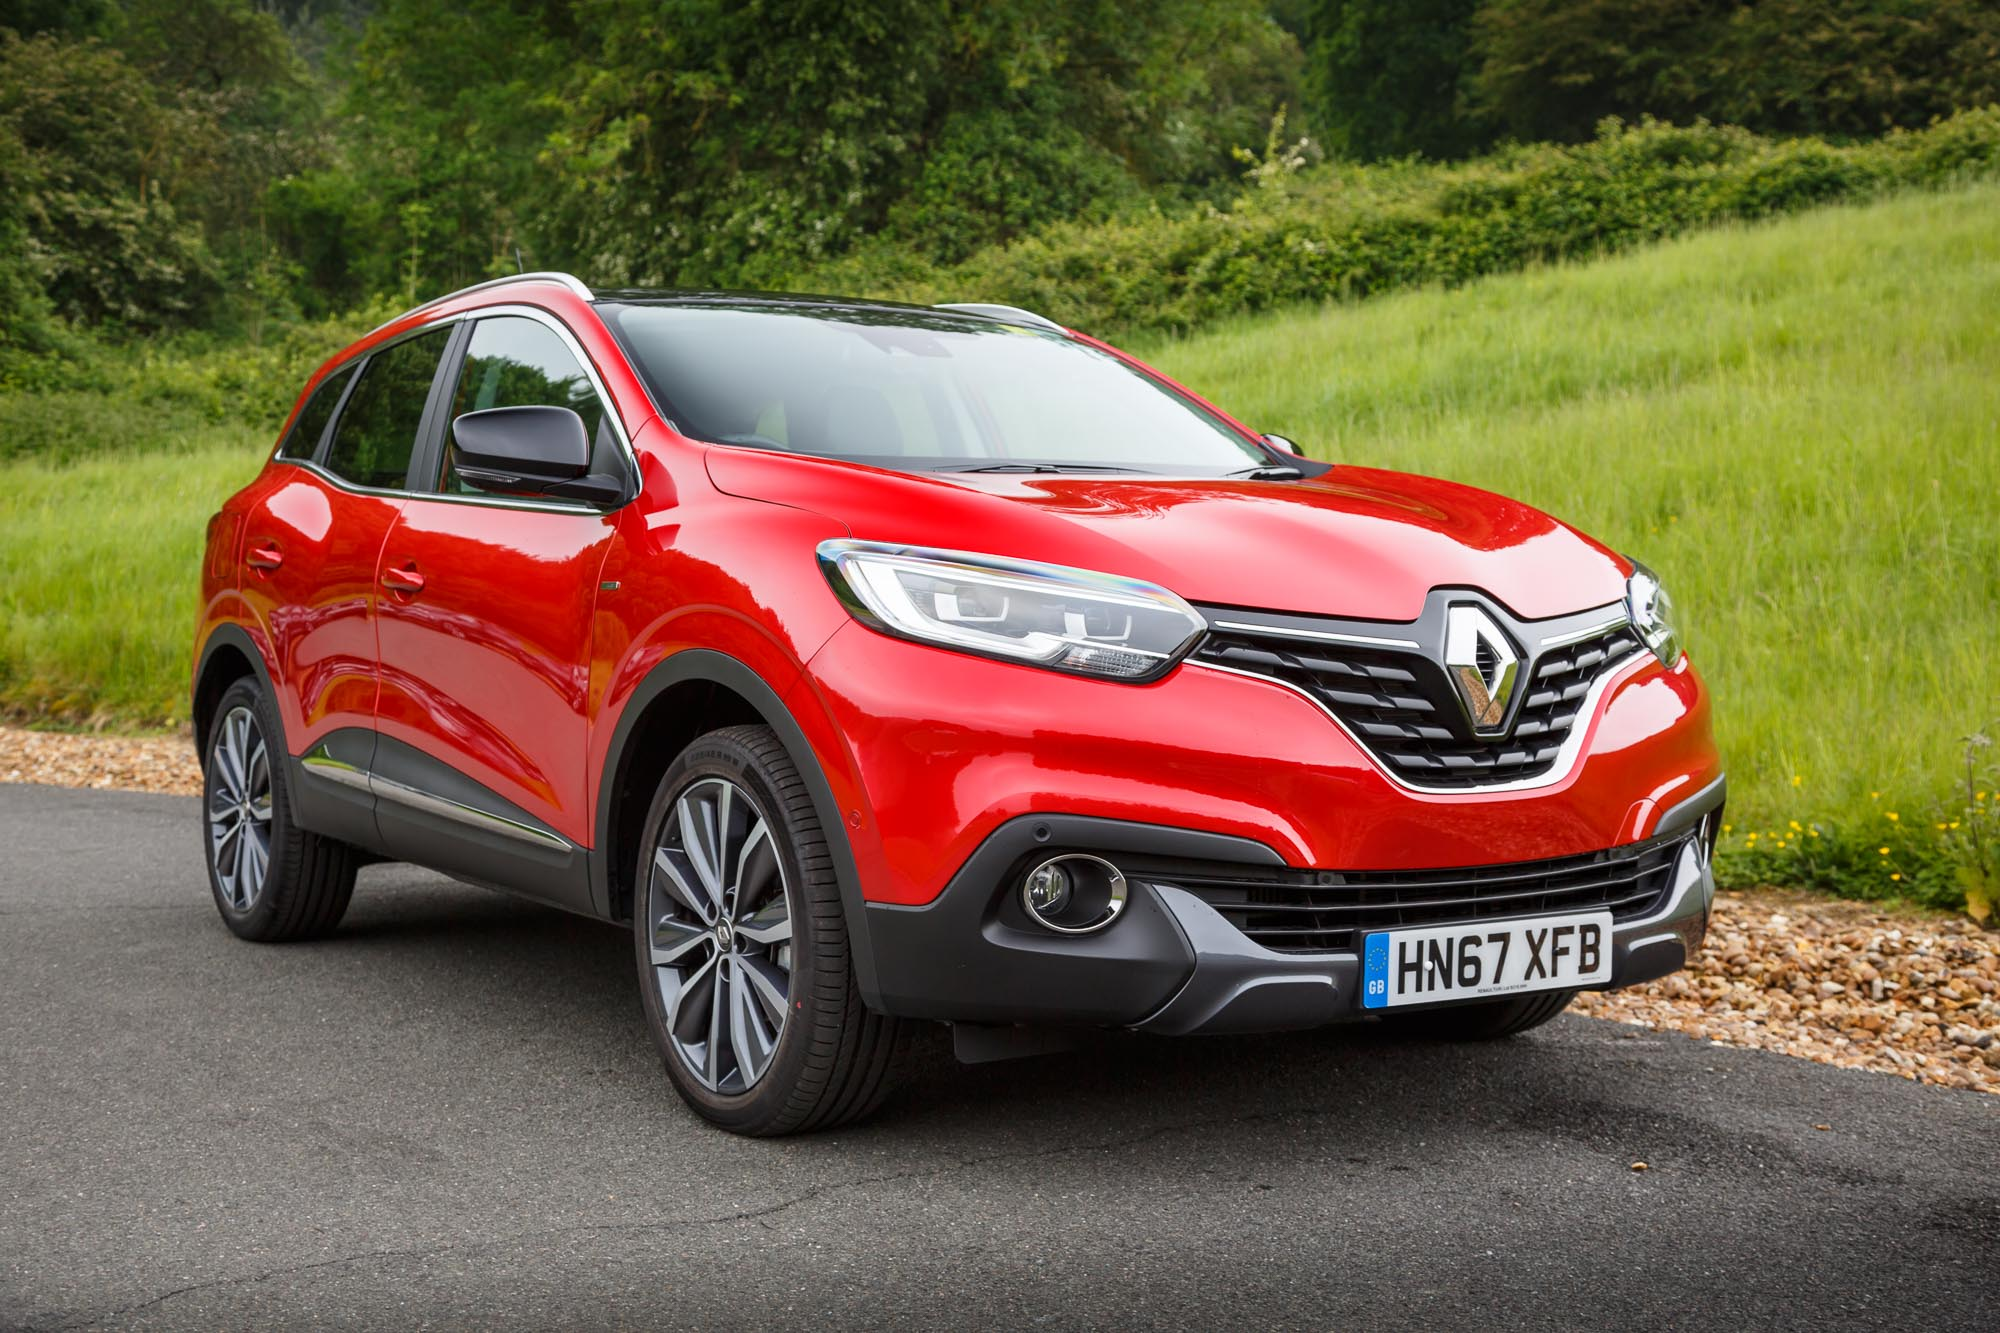 2018 renault kadjar signature dci 130 6 speed manual review. Black Bedroom Furniture Sets. Home Design Ideas